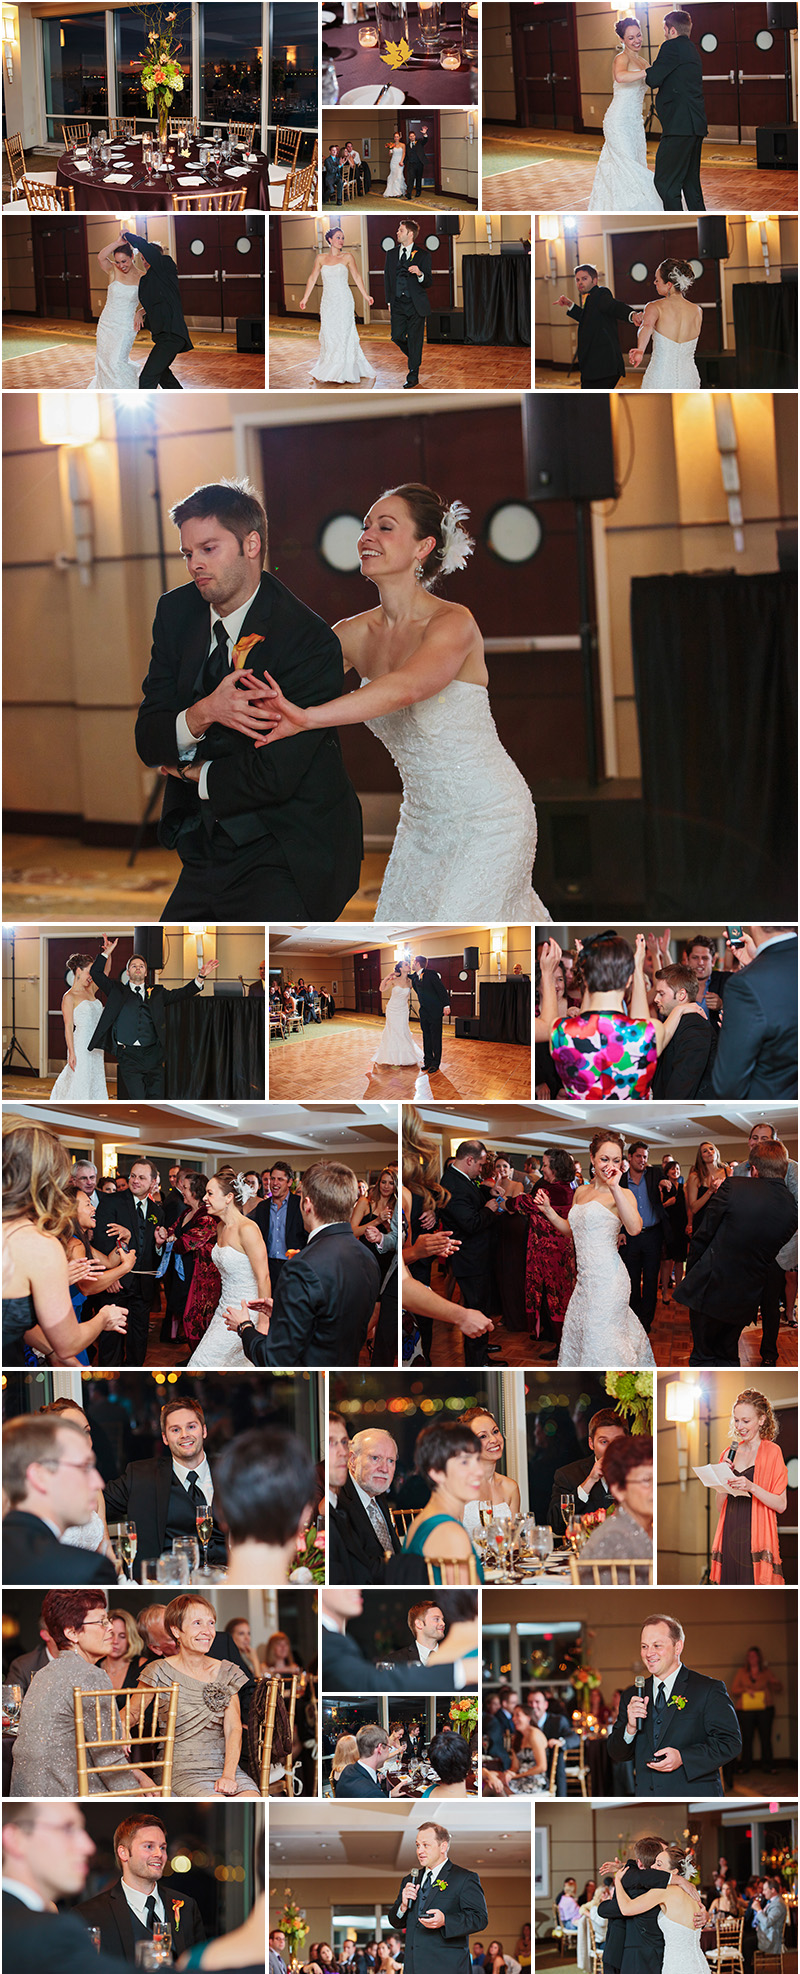 WEDDING PHOTOGRAPHY AT HYATT HARBORSIDE BOSTON